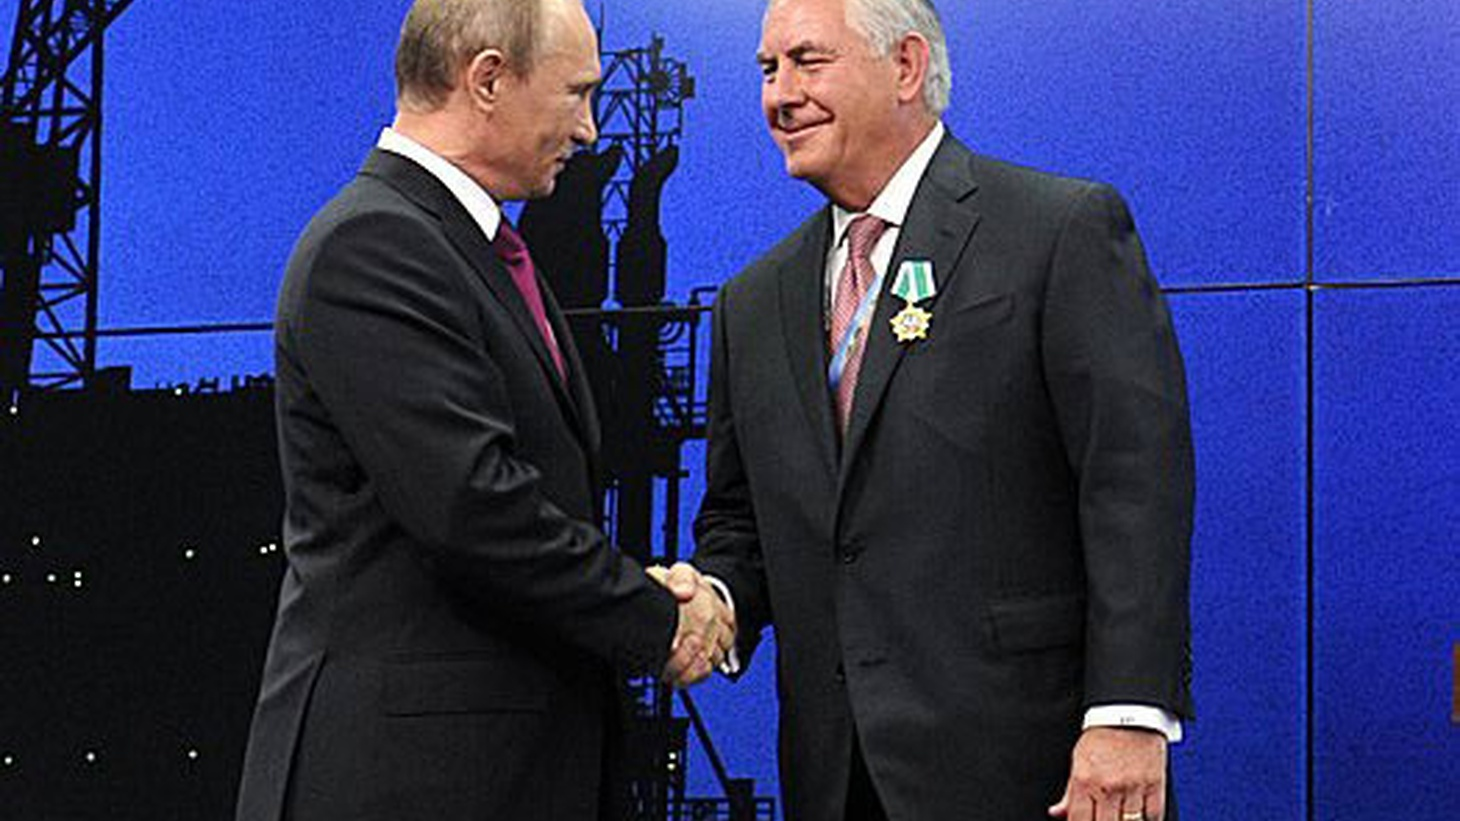 Some key Republicans are already grumbling about the Russian ties of Donald Trump's choice to be Secretary of State and his lack of diplomatic experience, raising questions about Senate confirmation. We hear more about Rex Tillerson and Trump's concept of foreign policy as deal-making.